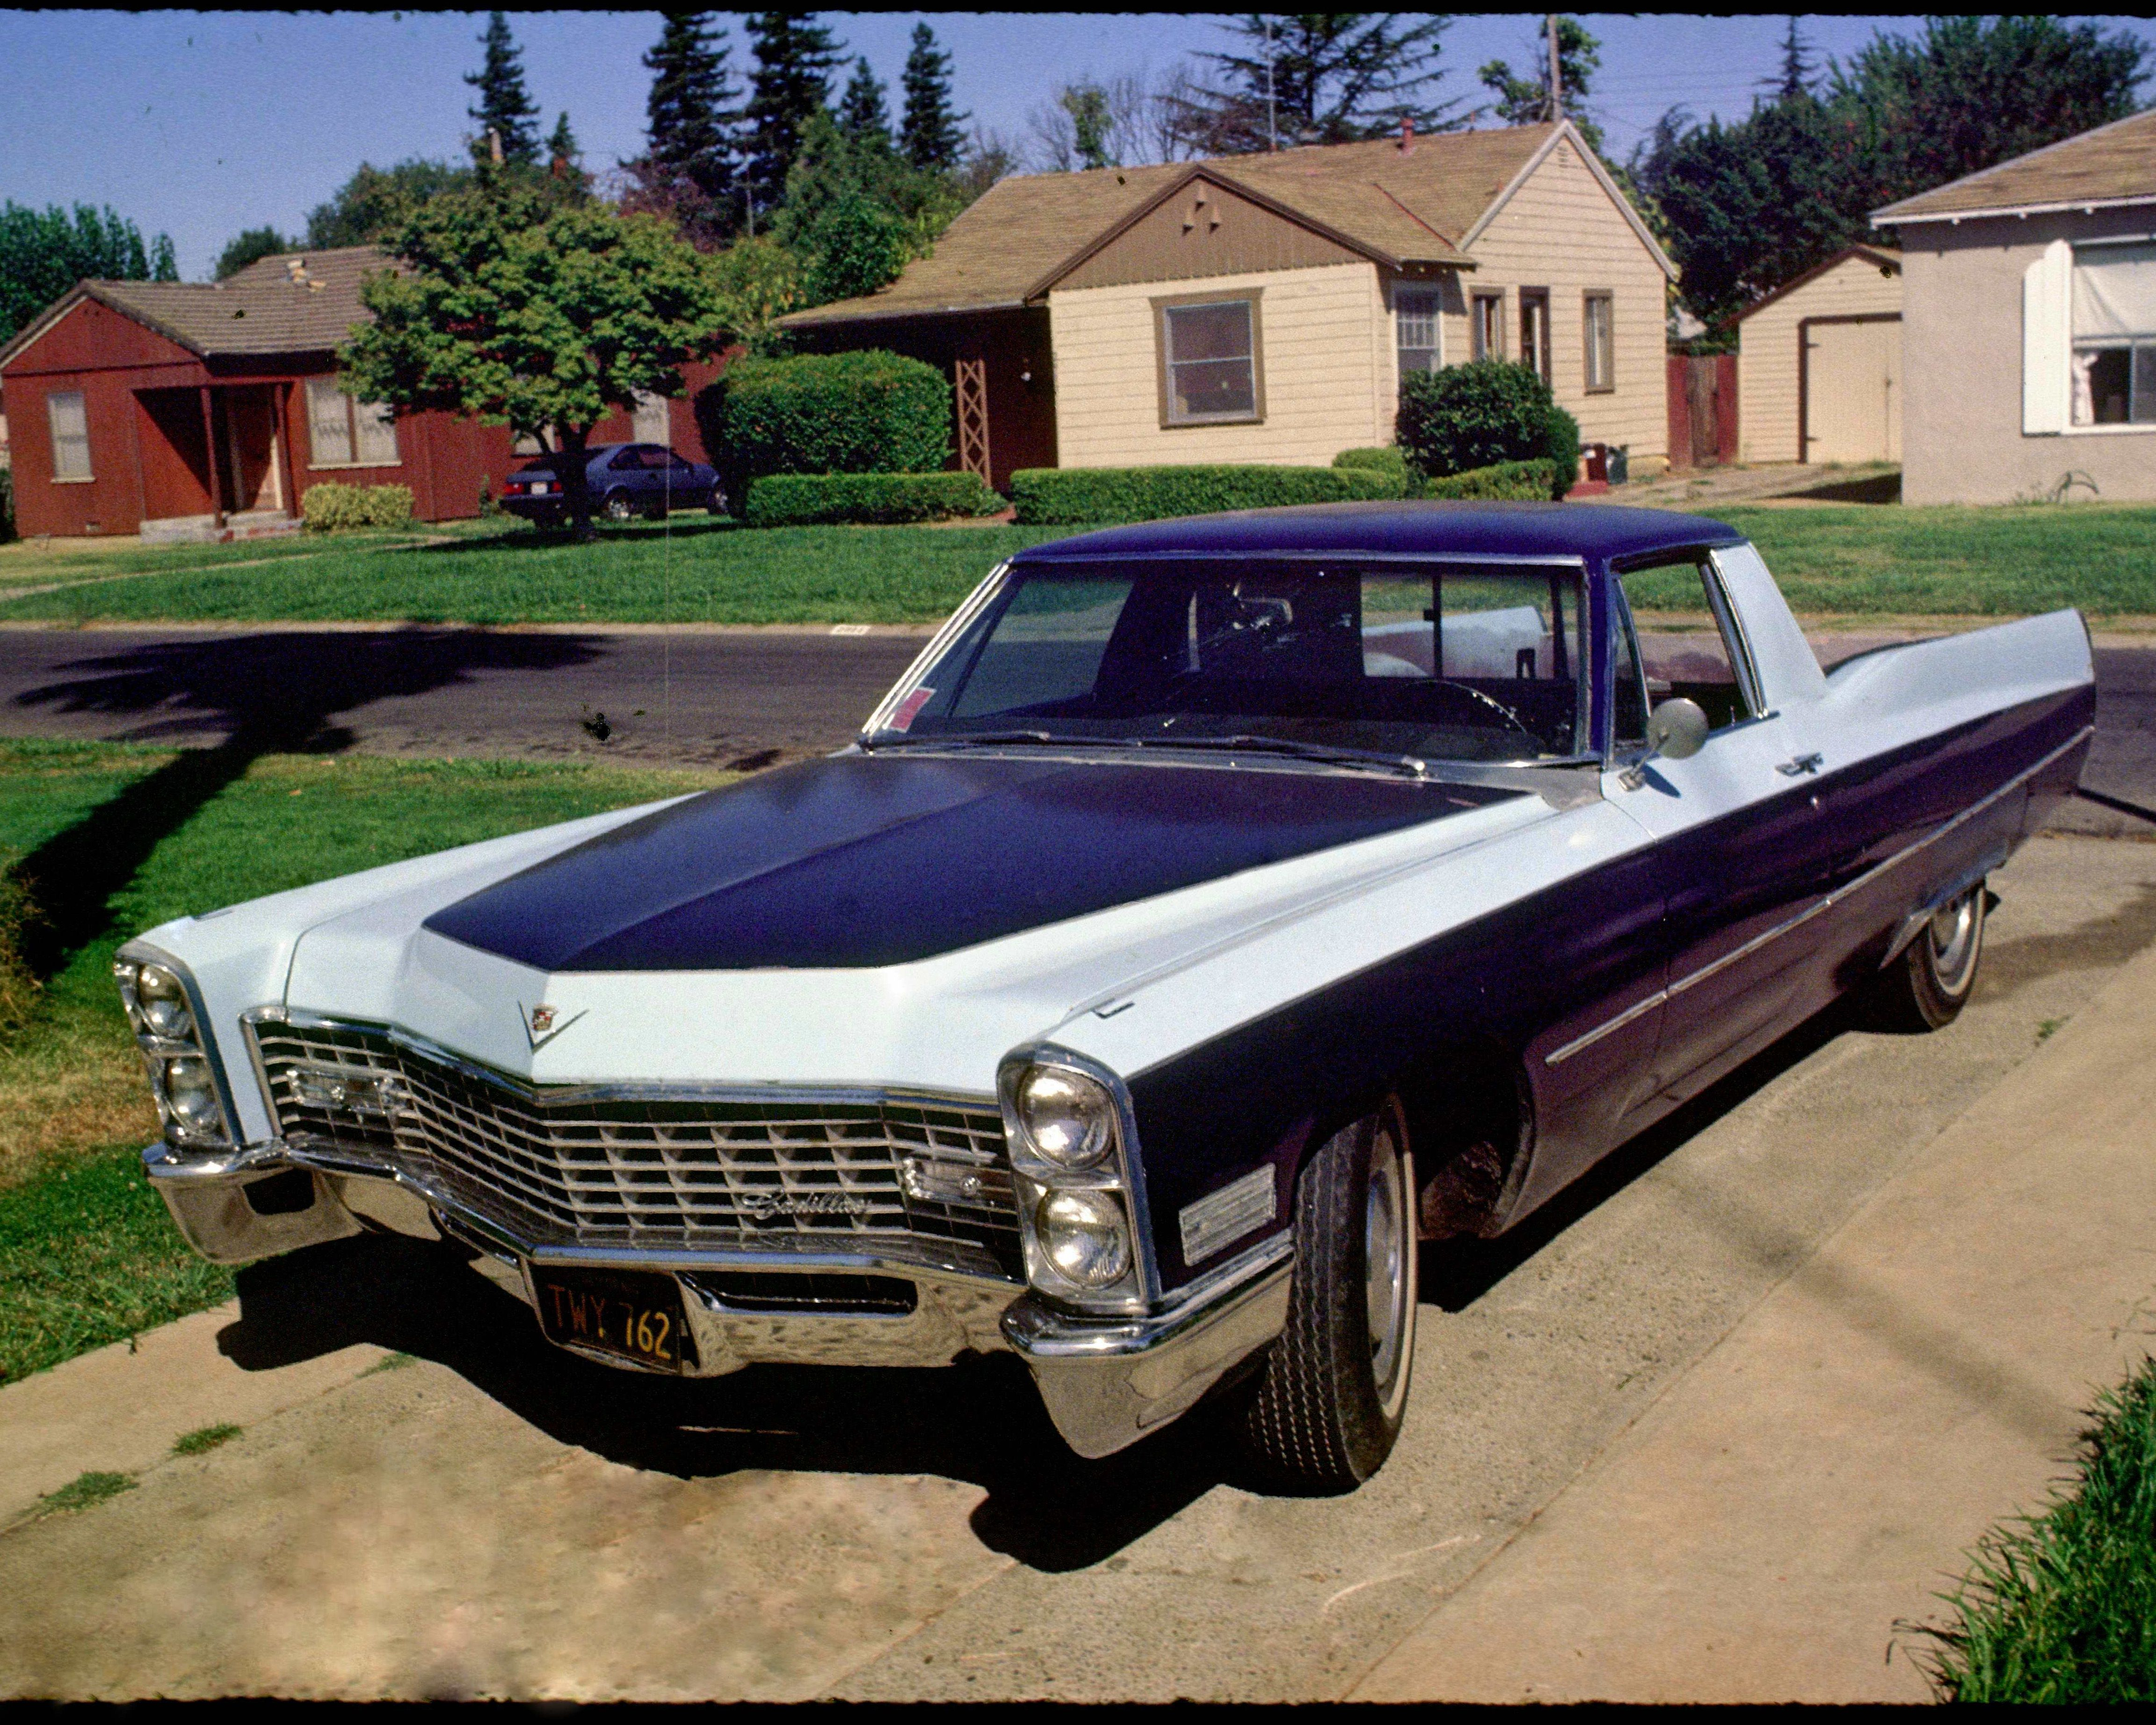 1959 lincoln continental convertible submited images pic2fly - 1965 Cadillac Pickup I Had In The Early 80 S It Was A Former